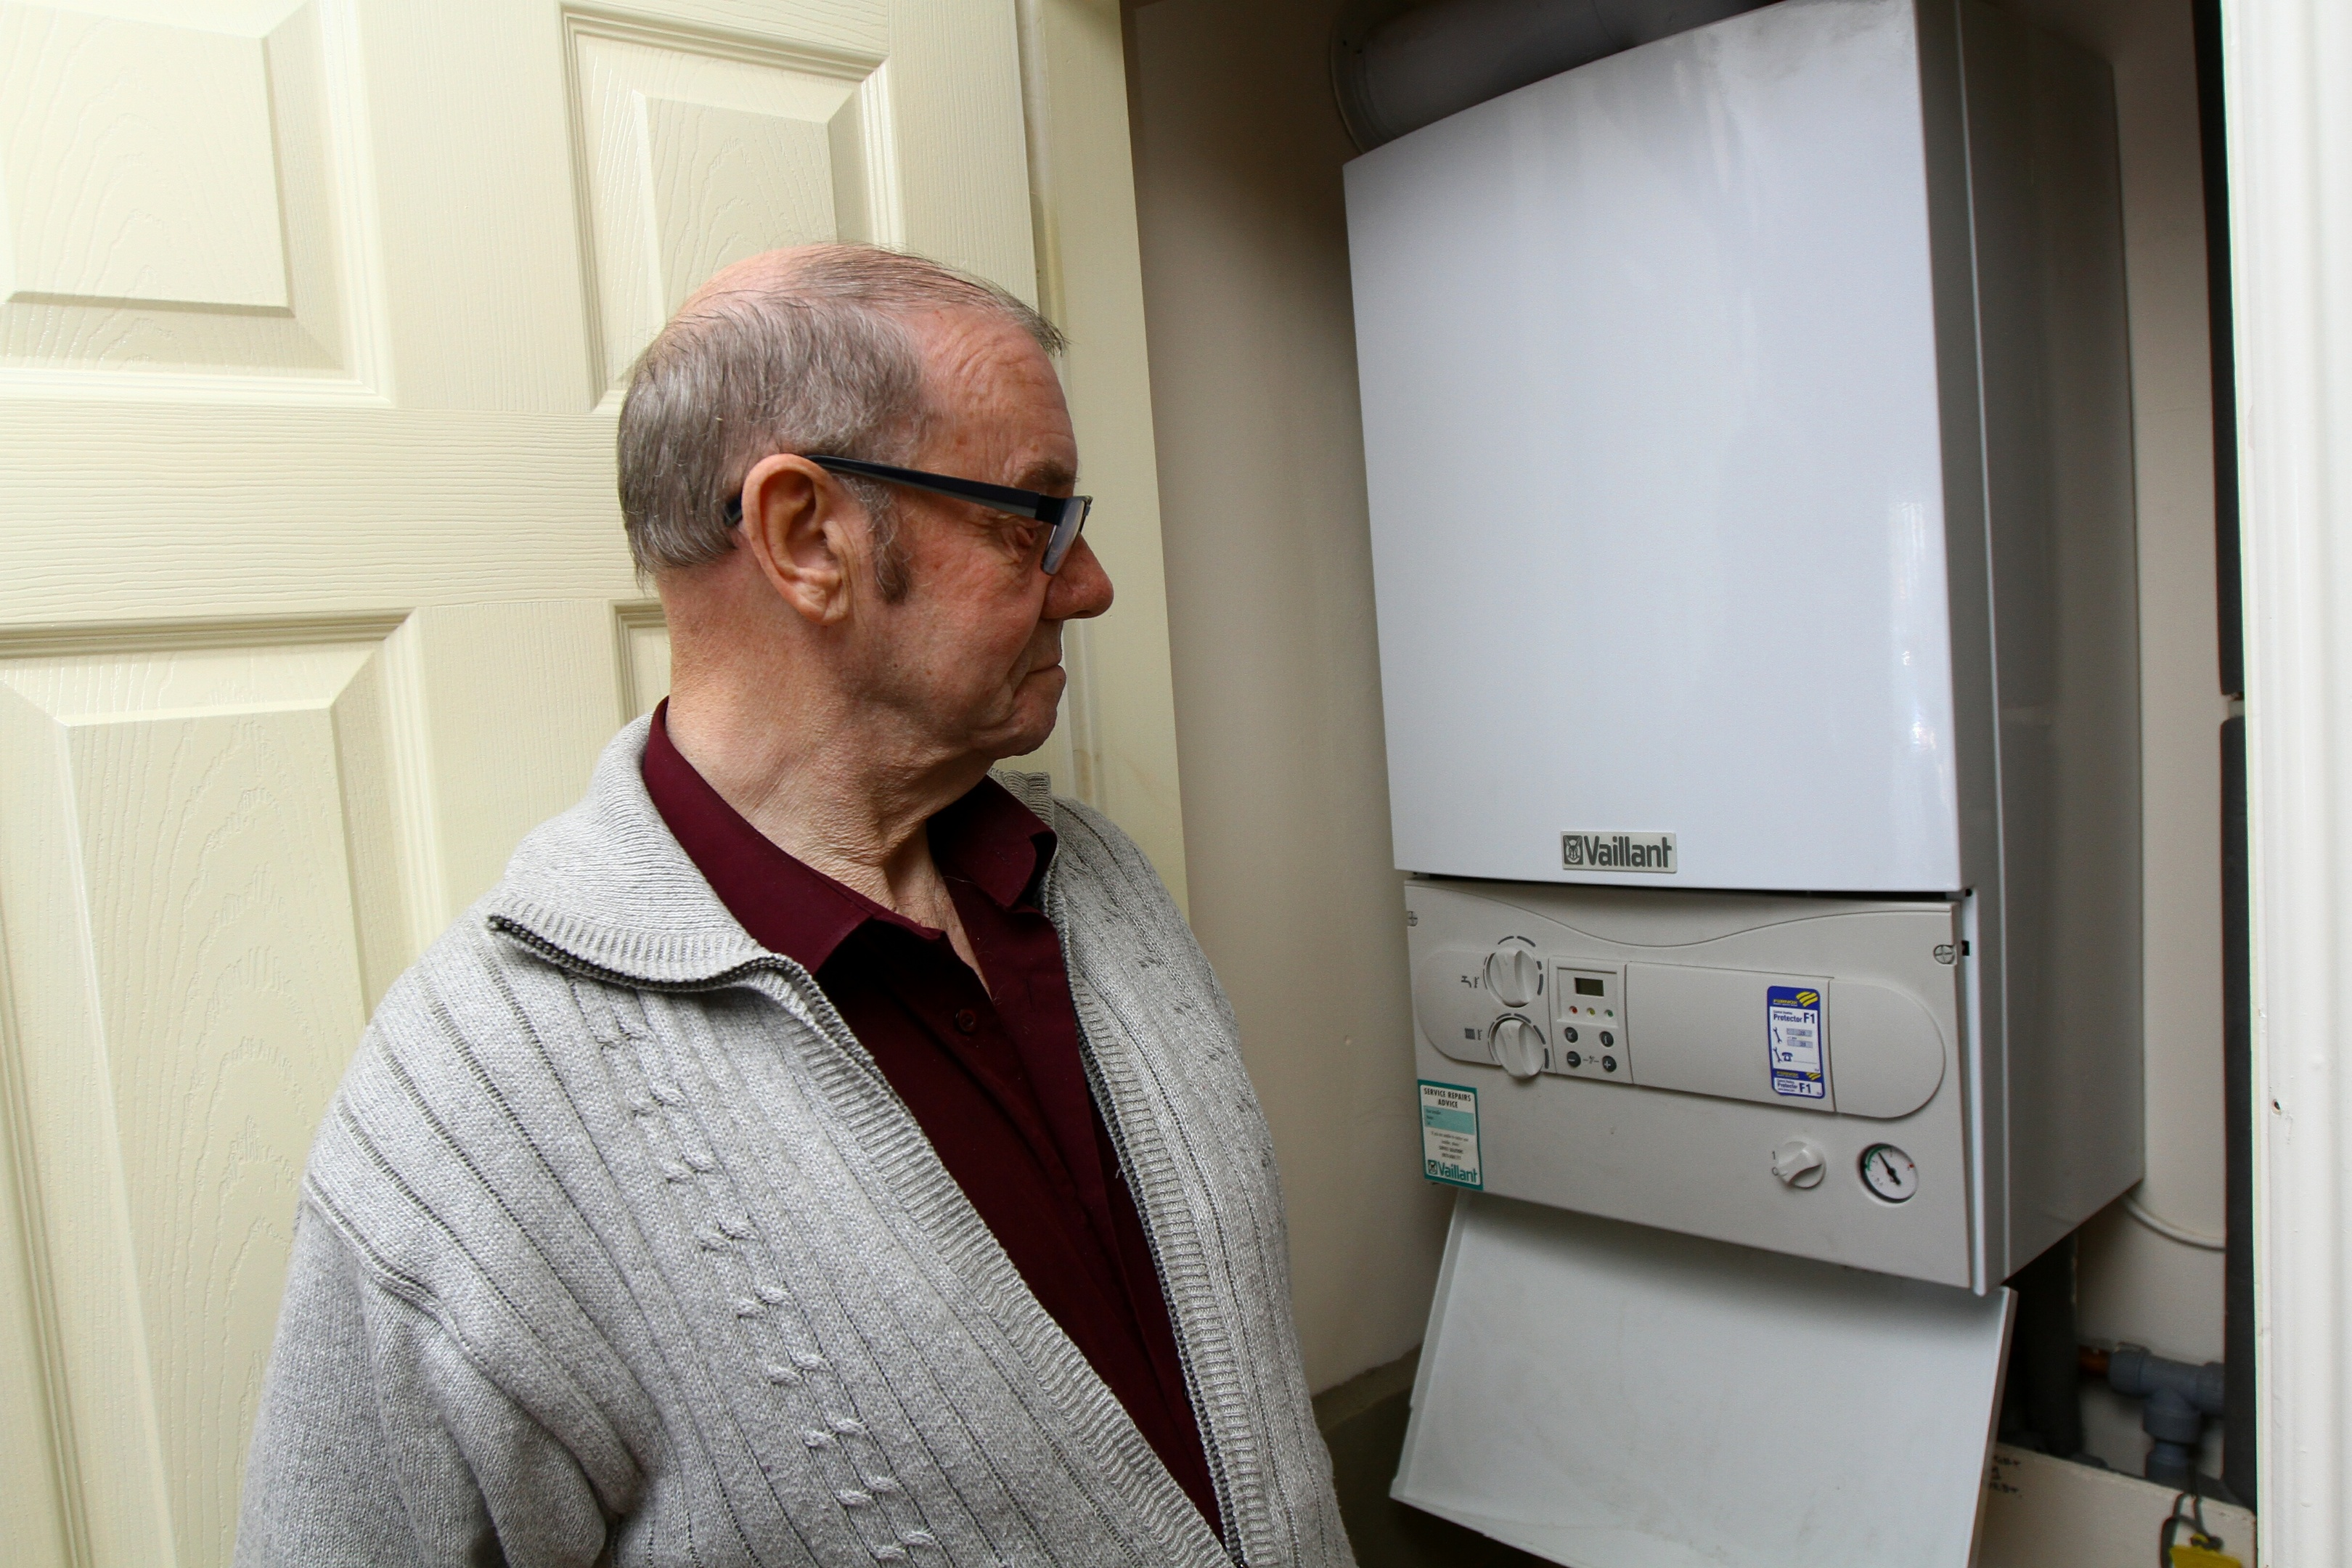 Mr Noble with the broken boiler